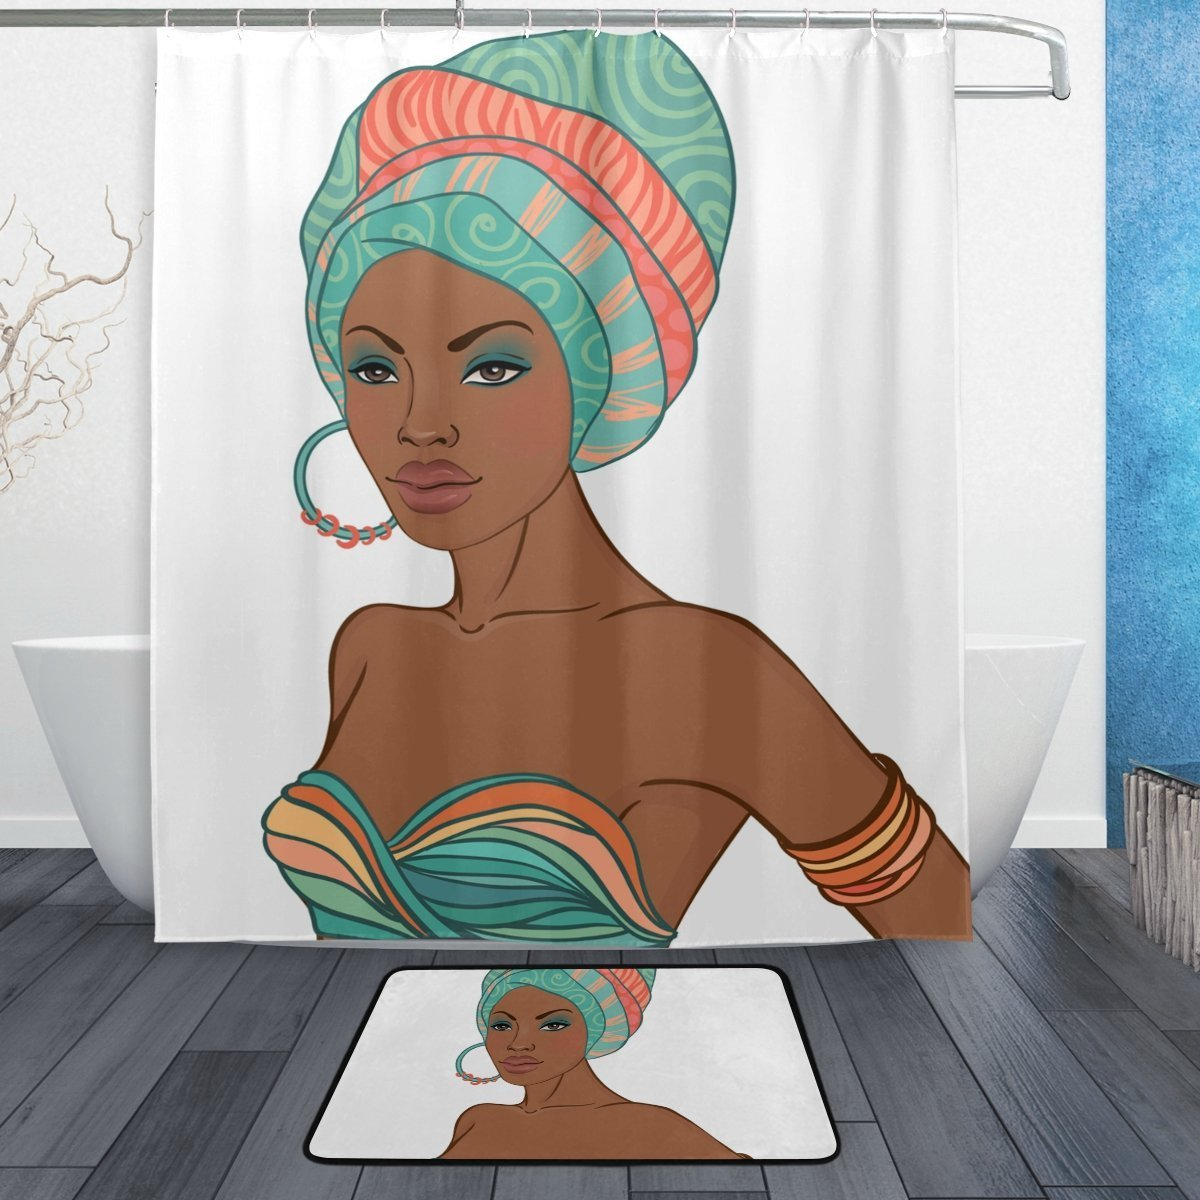 BAIHUISHOP African Women 3-Piece Bathroom Set, Machine Washable for Everyday Use,Includes 60x72 Inch Waterproof Shower Curtain, 12 Shower Hooks and 1 Non-slip Bathroom Rug Carpet - Set of 3 by baihuishop